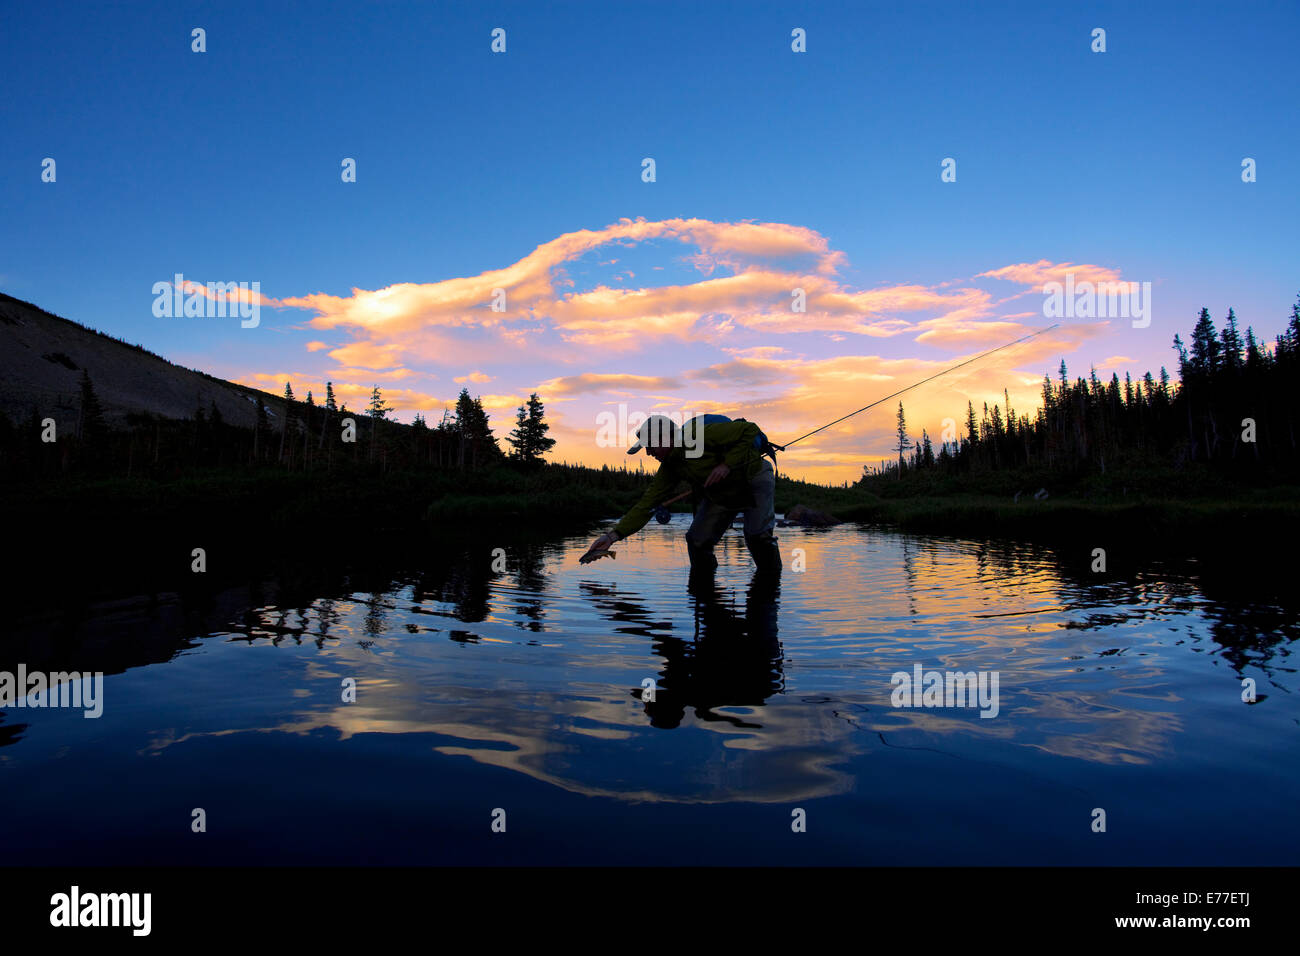 Fly fishing for brook trout in the early evening near Boulder, Colorado, USA. - Stock Image